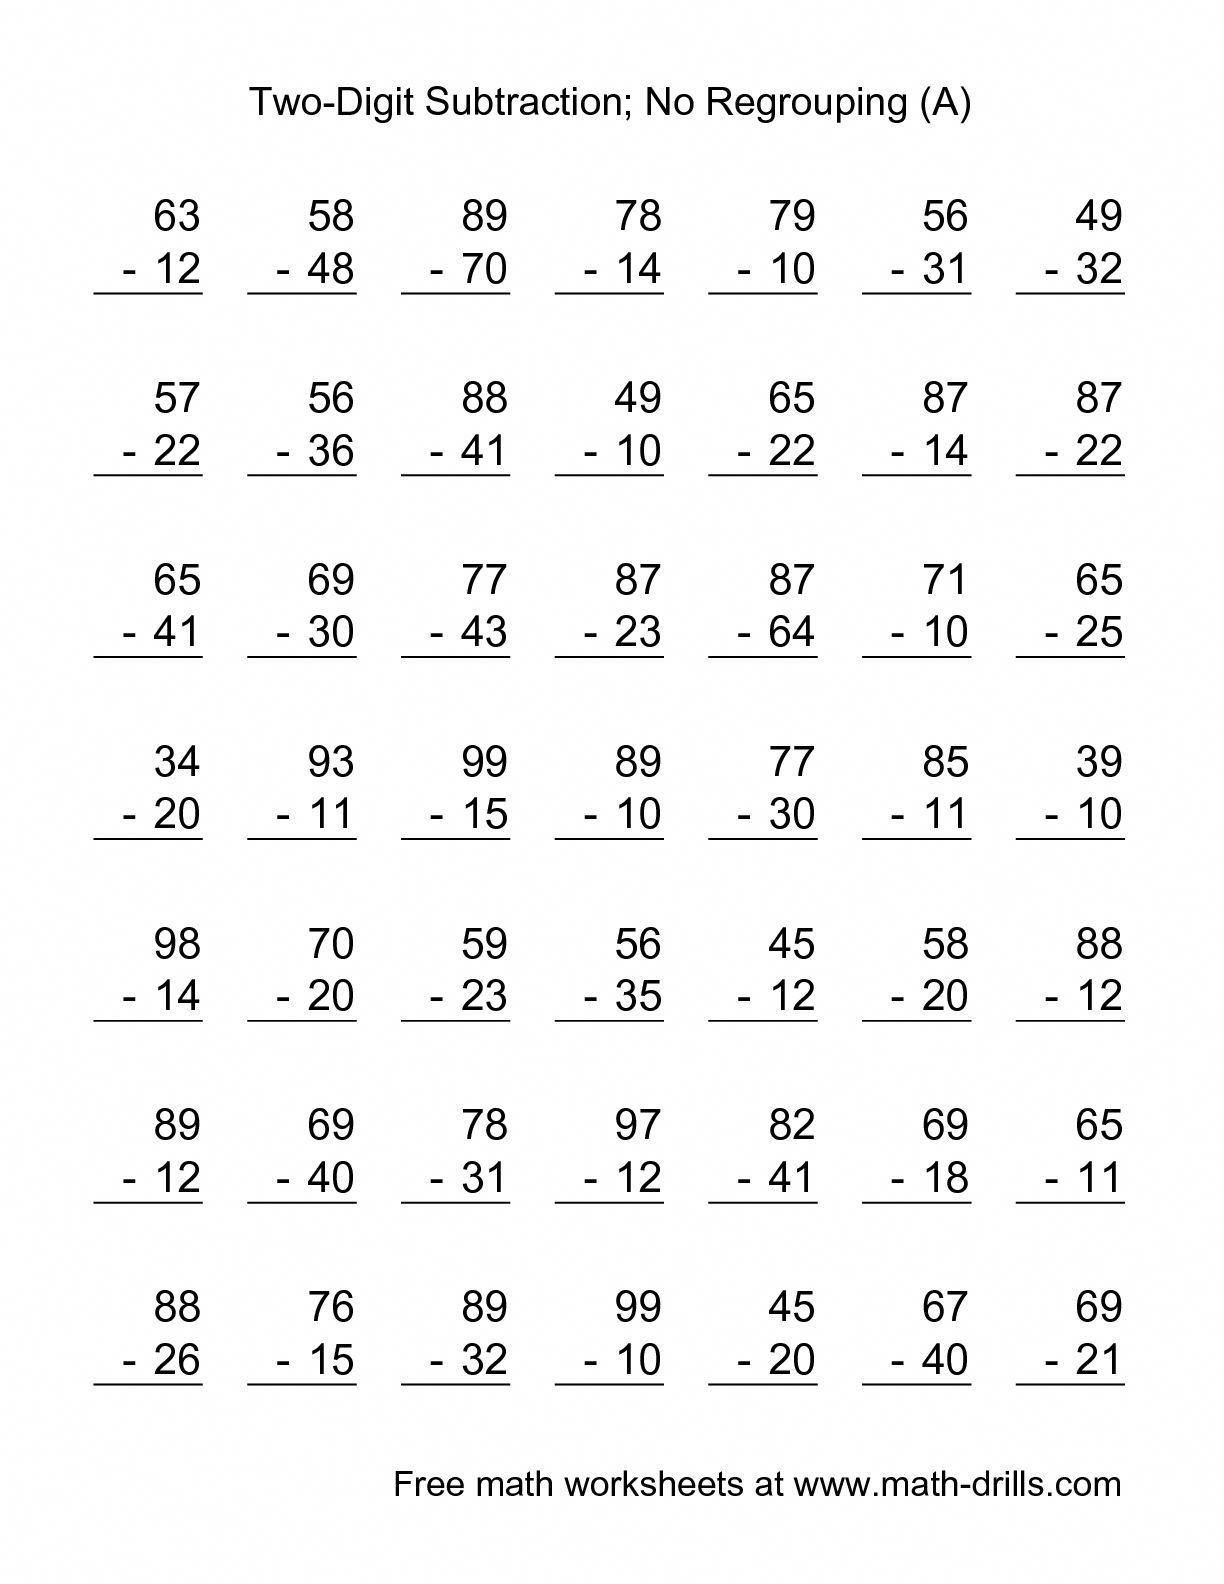 2 Easy Math Worksheets Subtraction The Two Digit Subtraction With No Regrouping 49 Ques In 2020 2nd Grade Math Worksheets Easy Math Worksheets Math Addition Worksheets Addition and subtraction worksheet 2nd